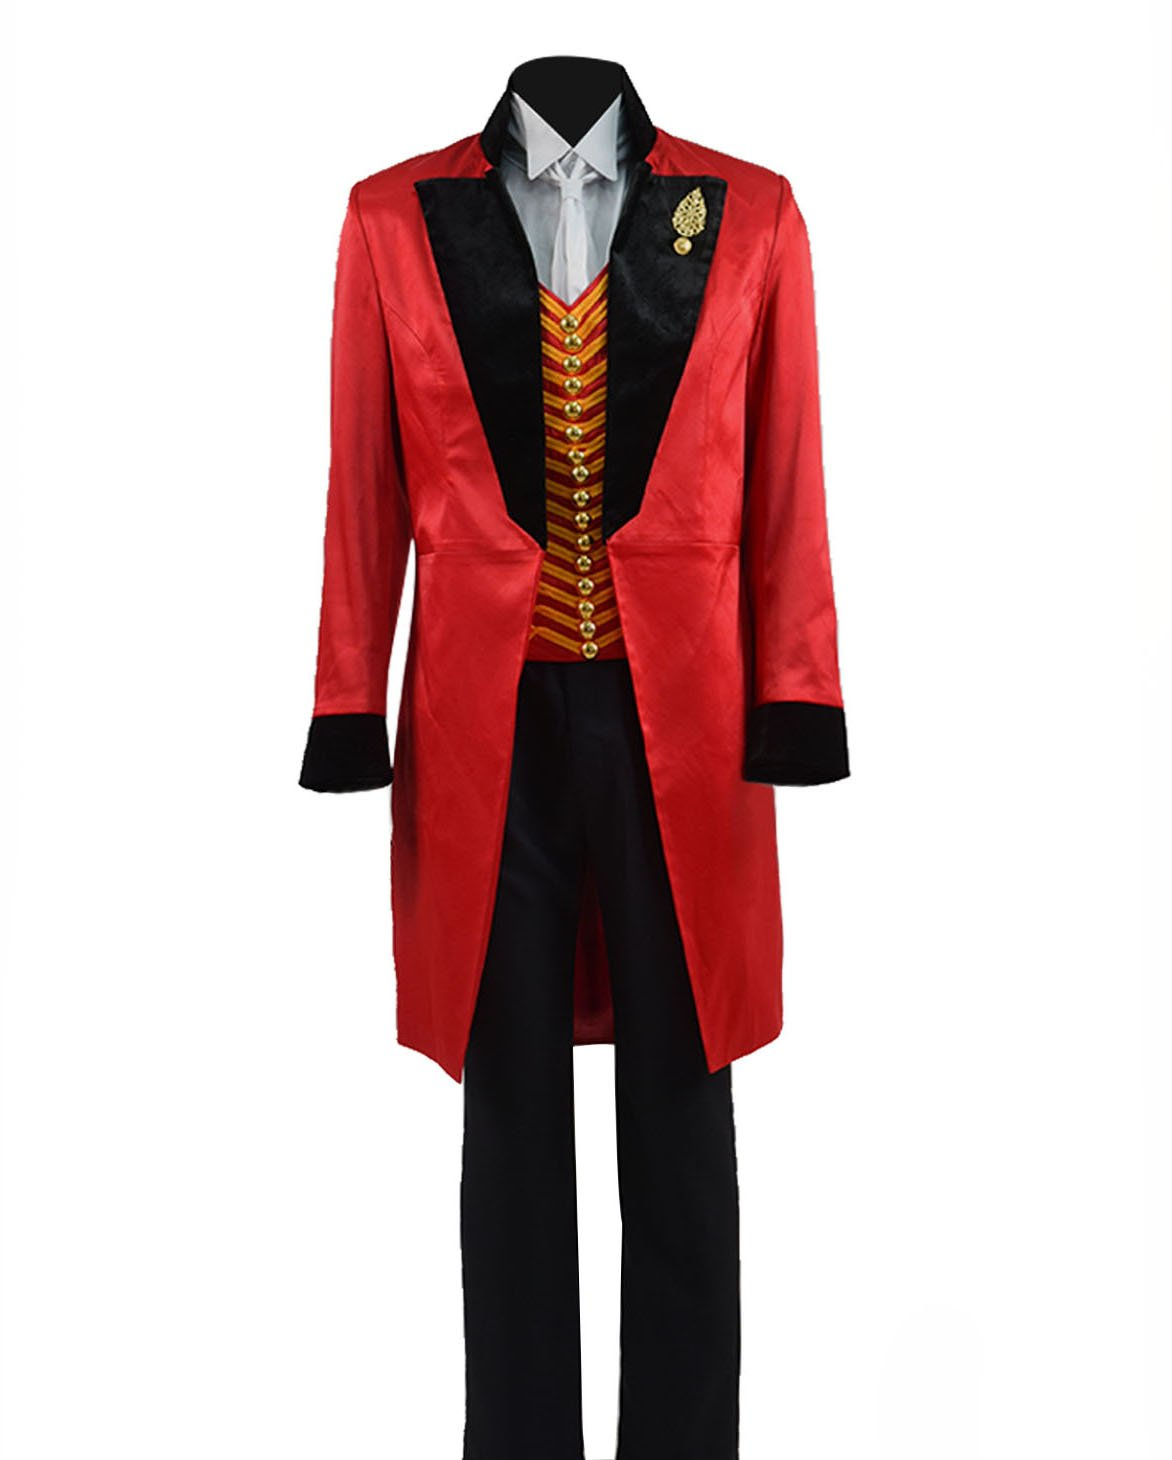 VOSTE Greatest PT Barnum Cosplay Costume Performance Uniform Showman Party Suit (Medium, Red Black) by VOSTE